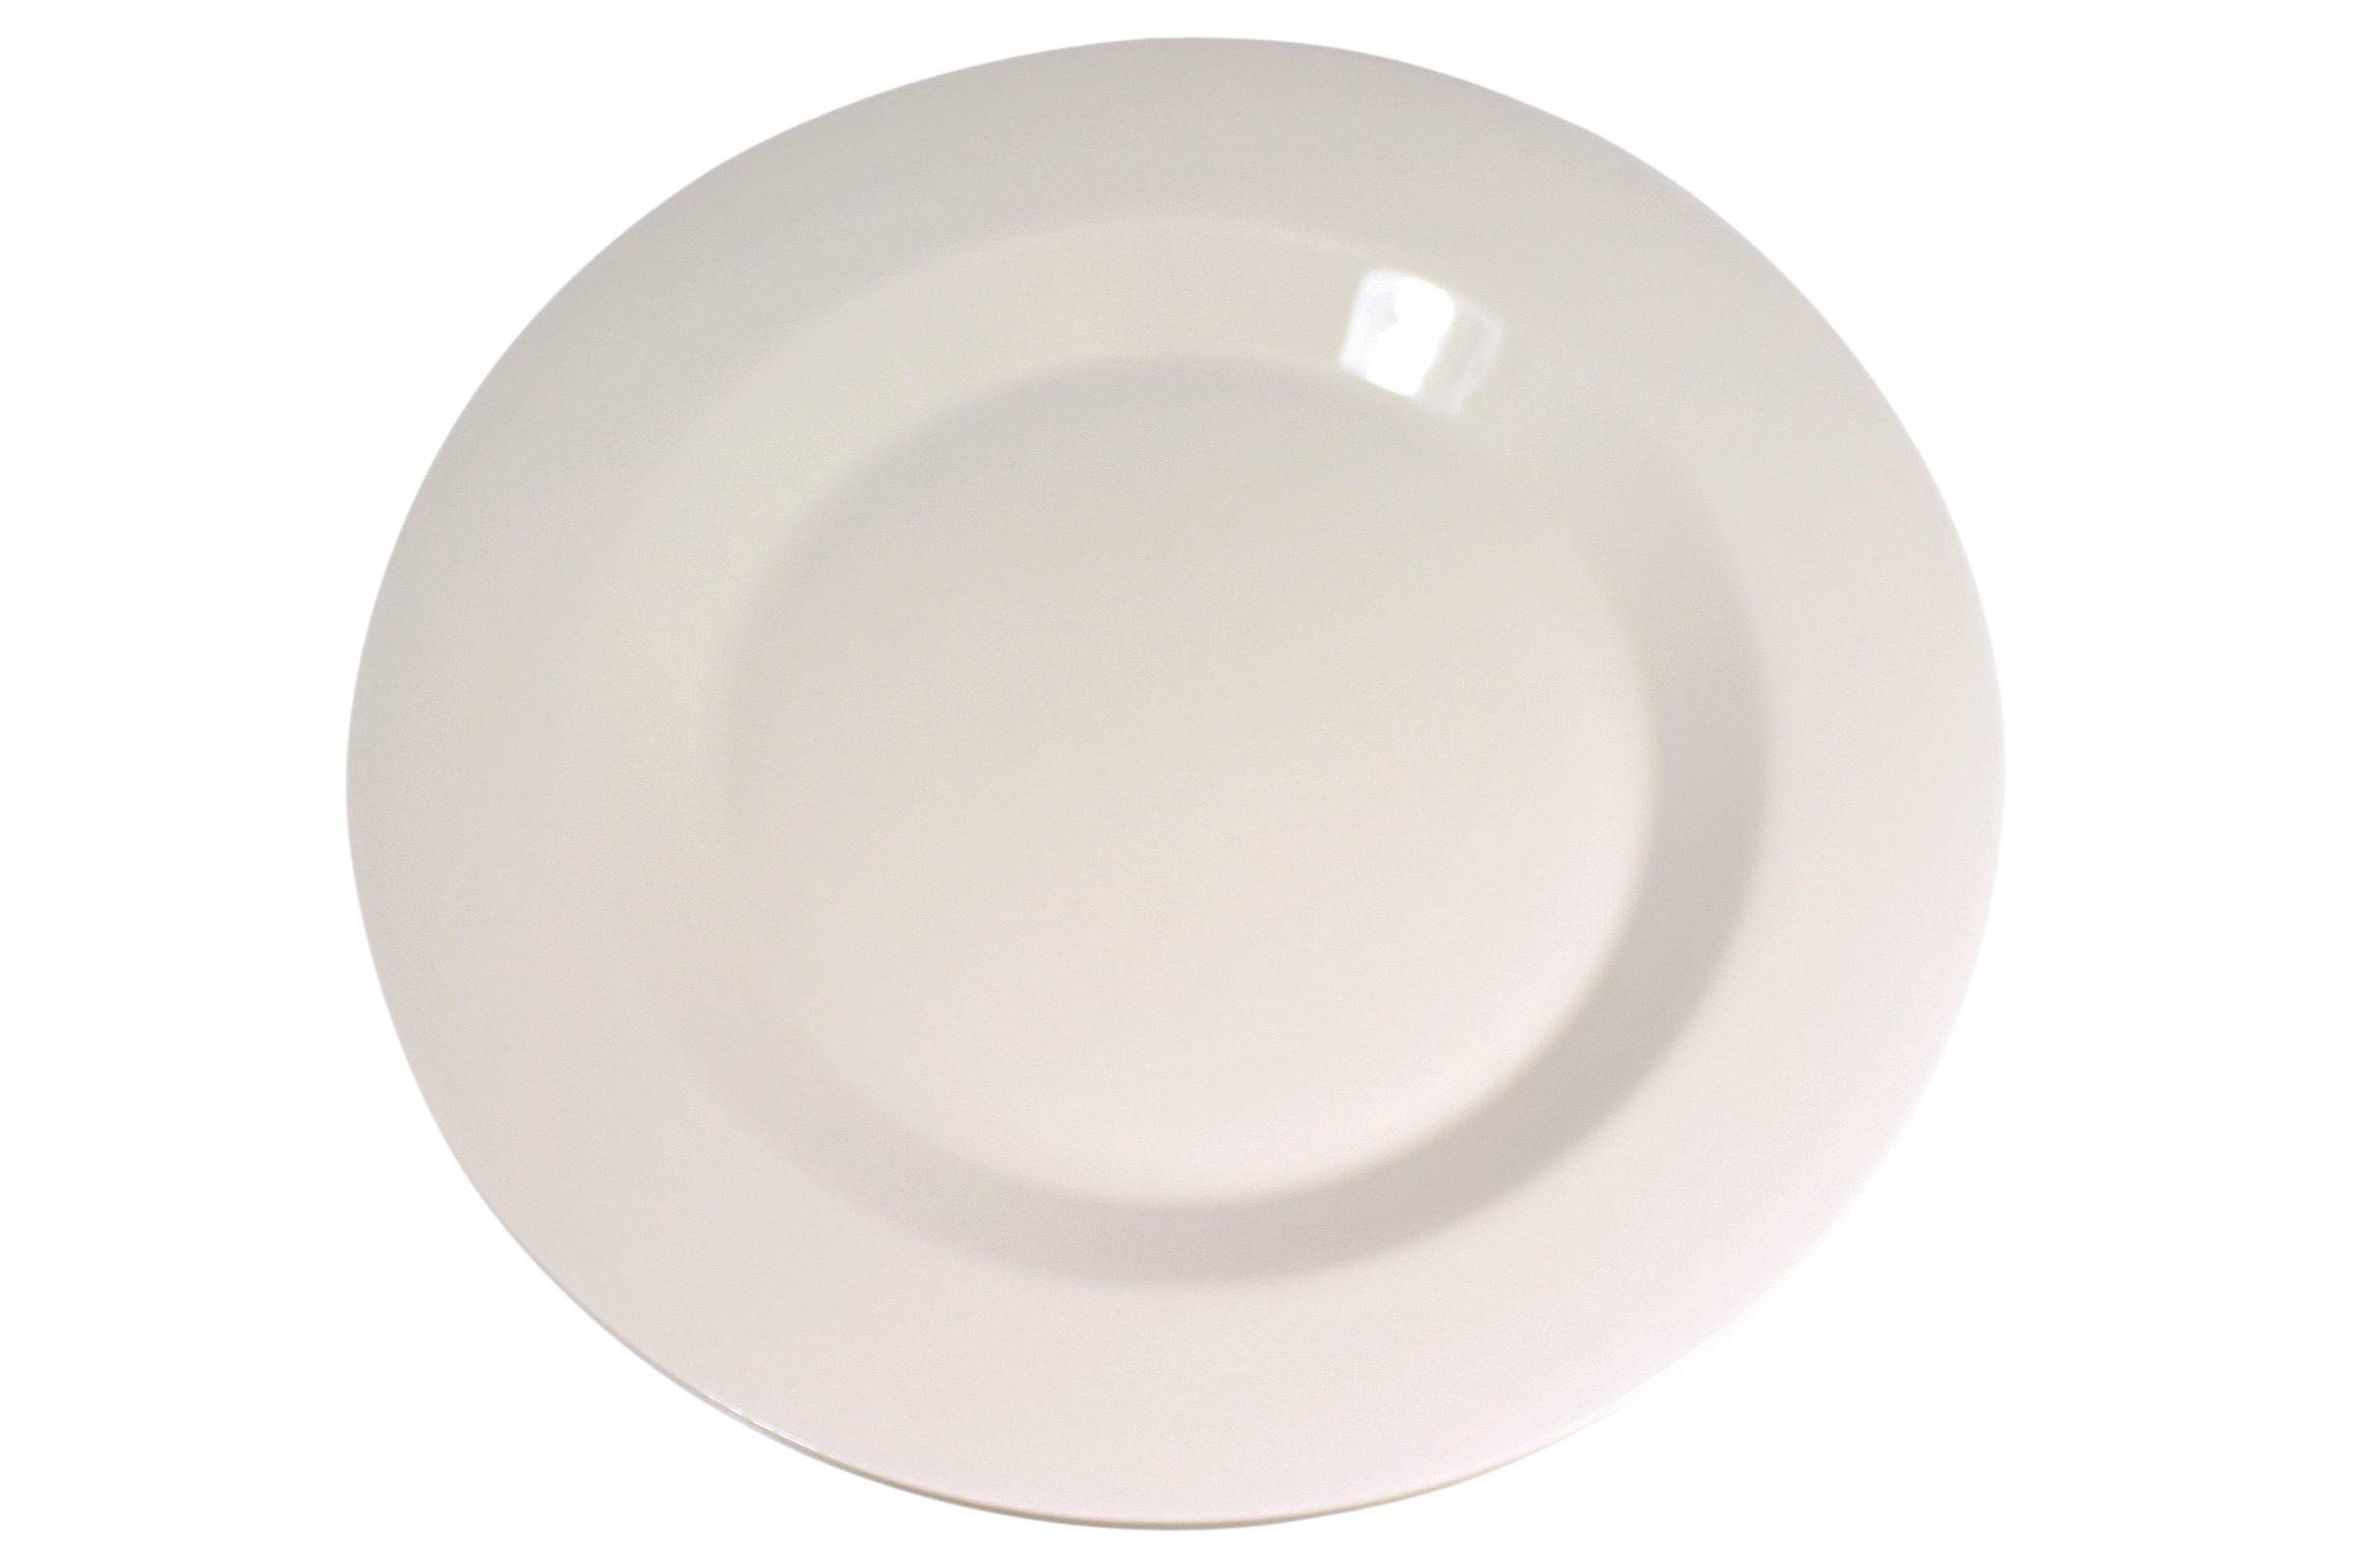 Fair Trade Original dinerbord (Ø26 cm) (set van 2)